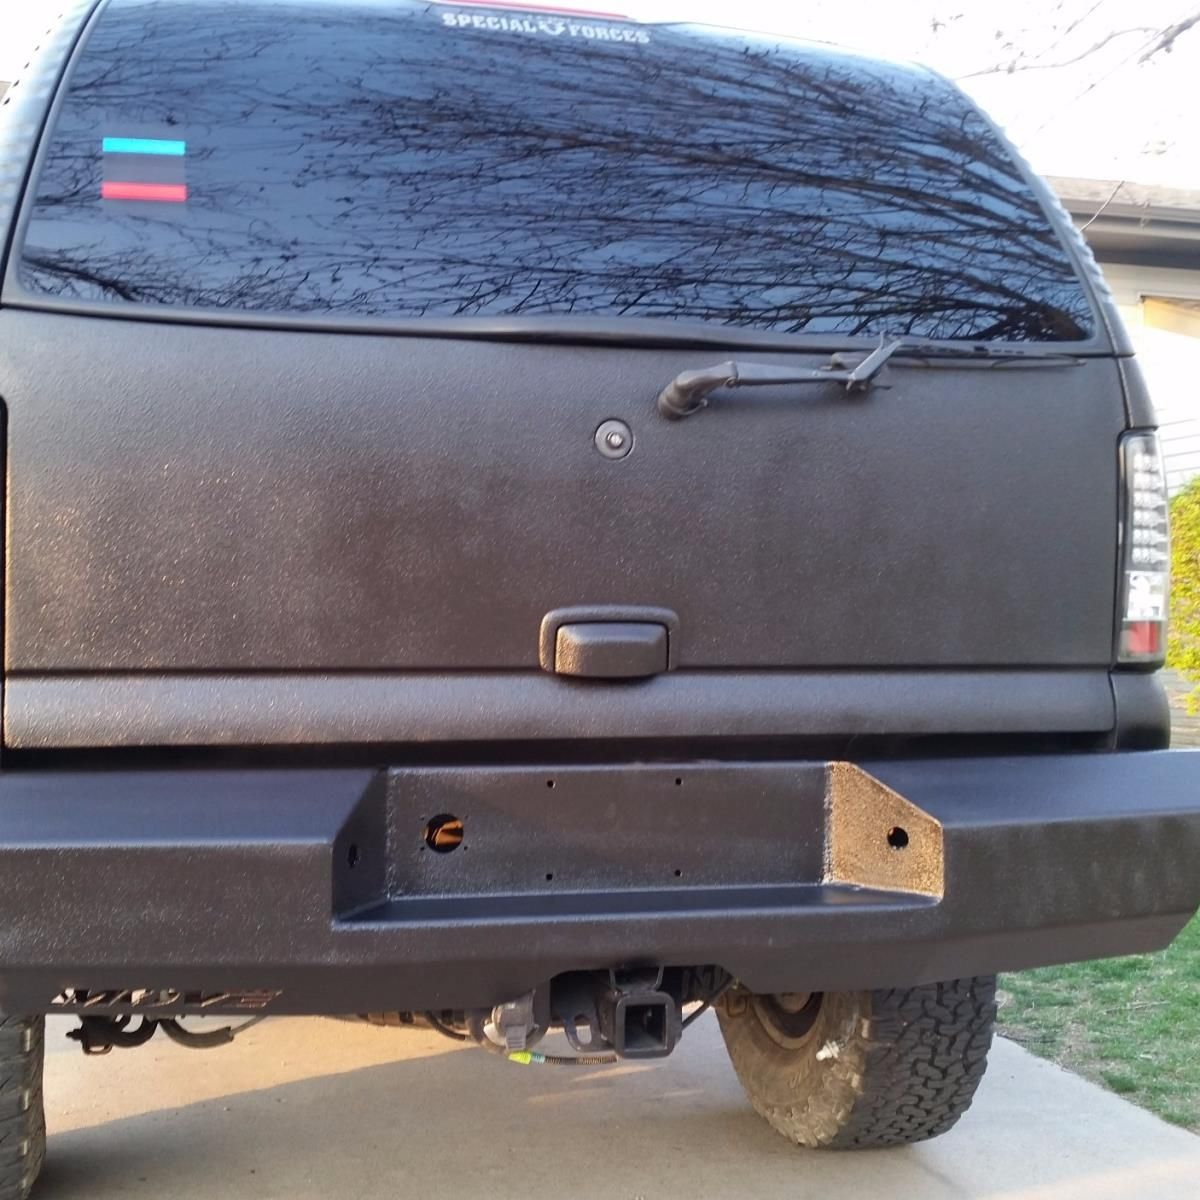 Check out this sweet DIY bumper from movebumpers!